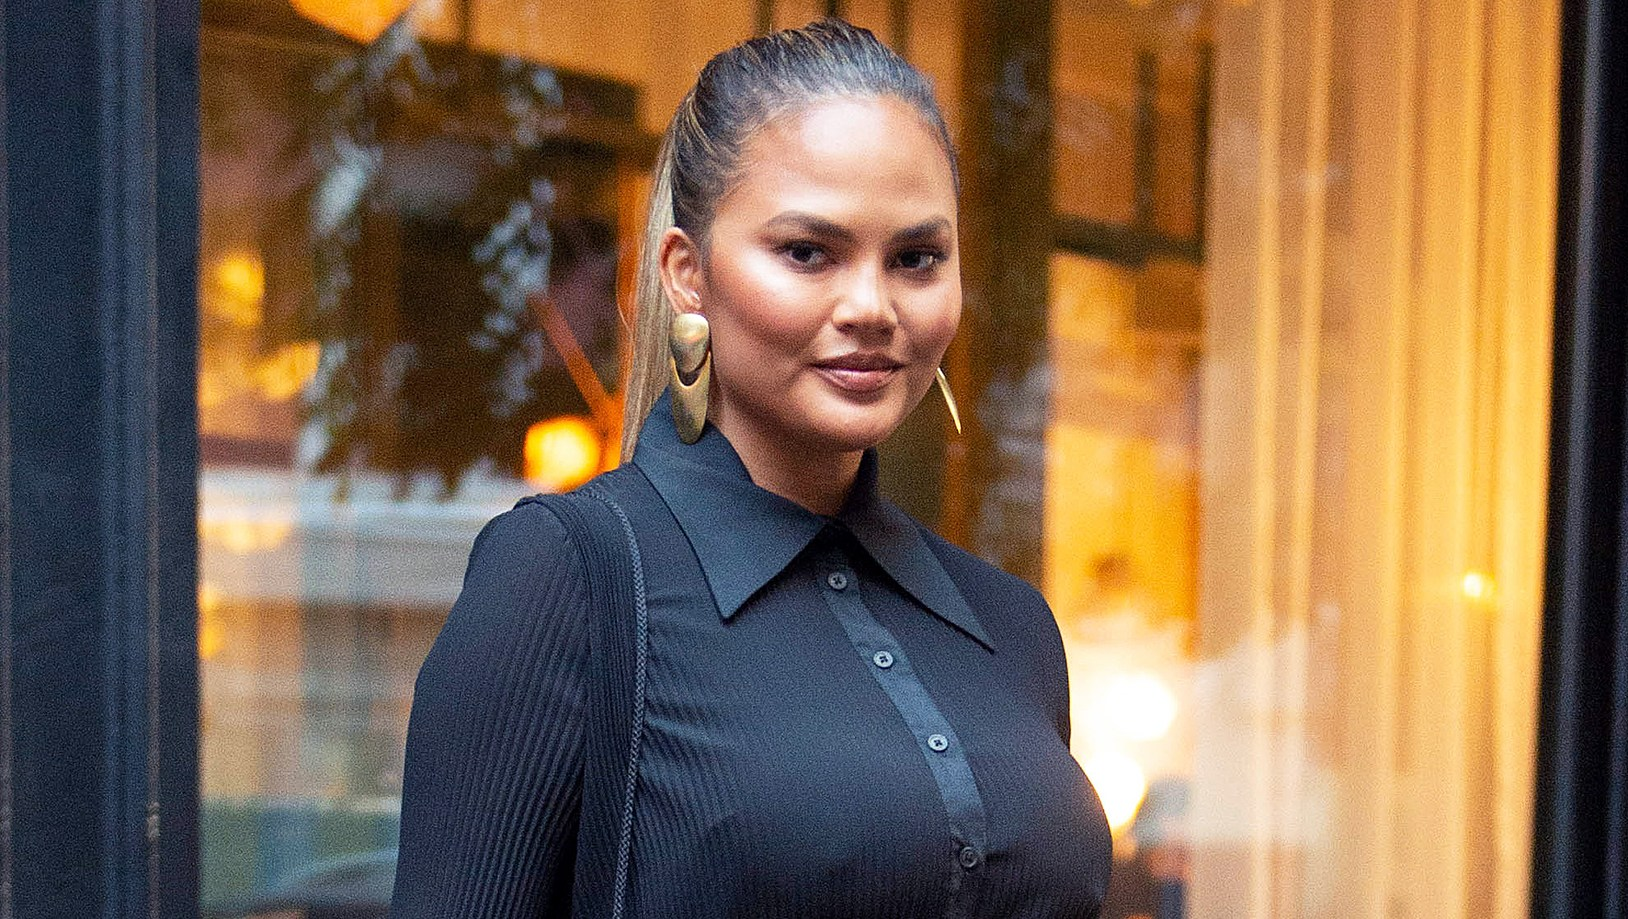 Chrissy Teigen Responds After Critics Slam Her for Mixing Kimchi With Her Hands: 'Using My feet Next Time'